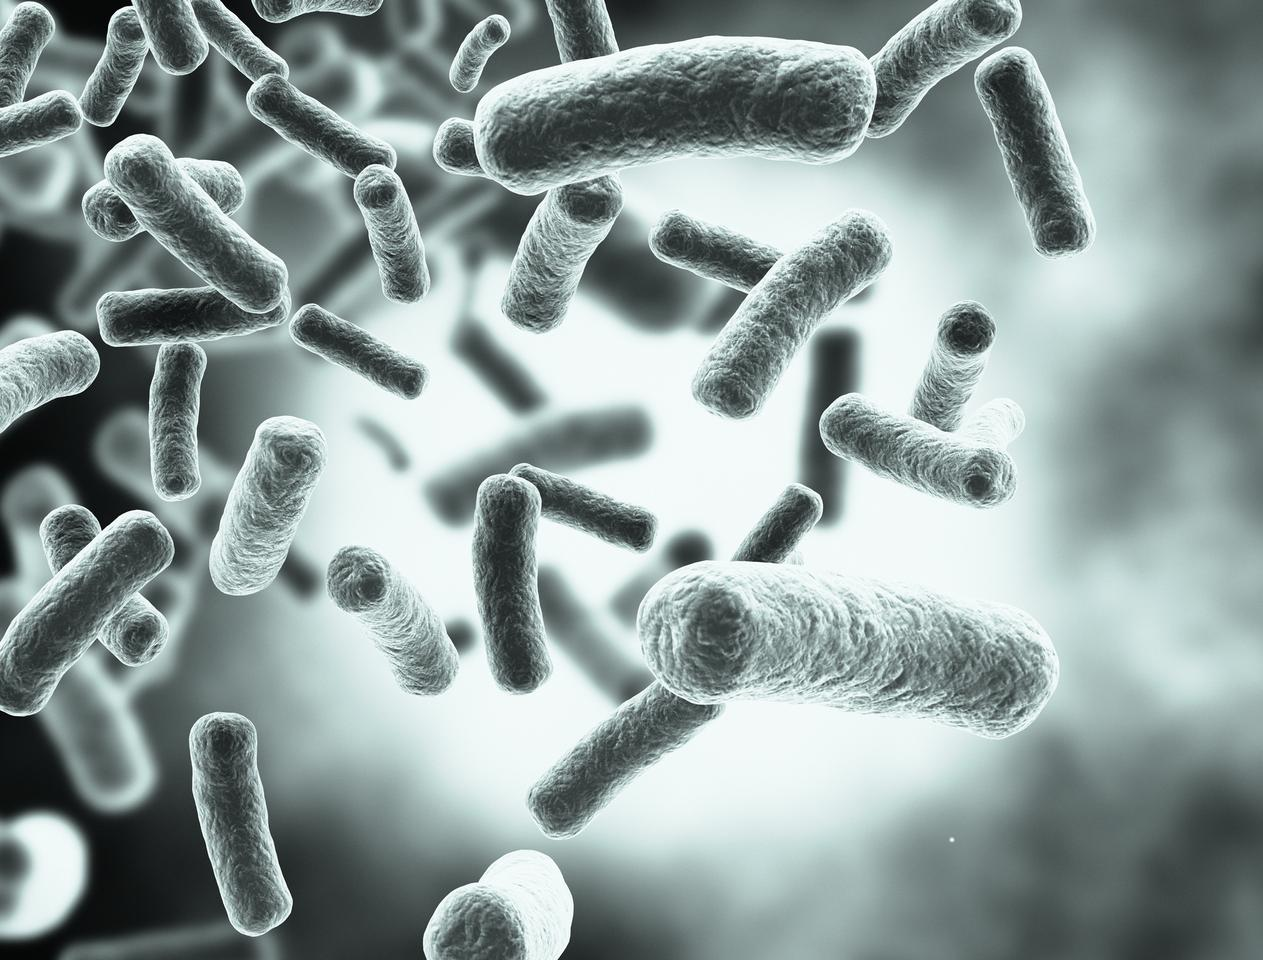 A new technique for fighting bacteria like Salmonella is to guide their evolution down dead-end paths where they can no longer harm the host